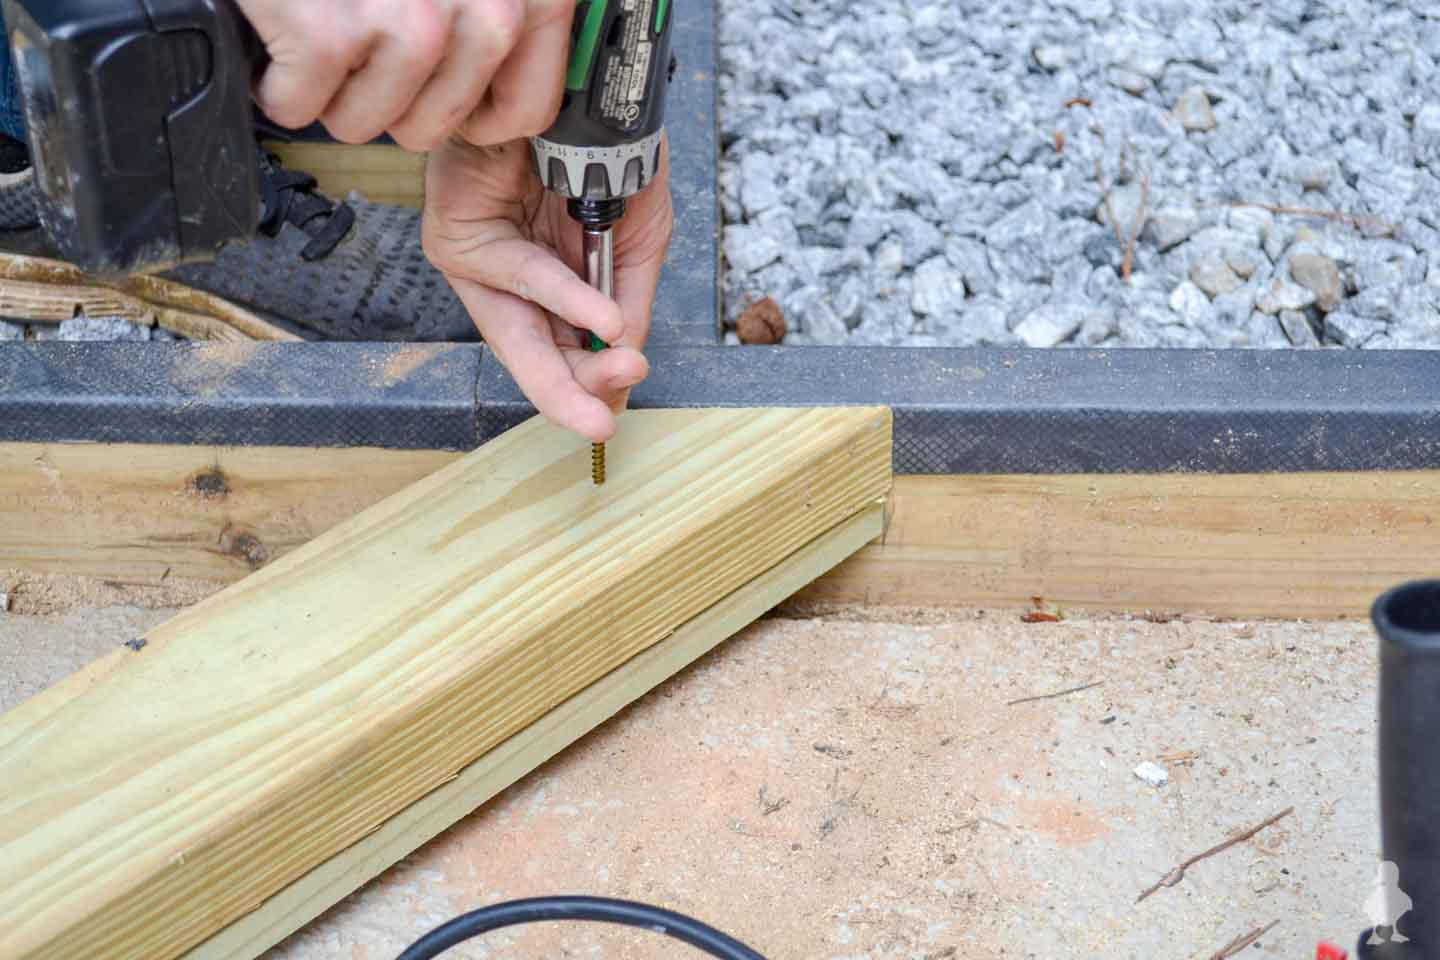 use grk screws to attach 2x4 to 1x4